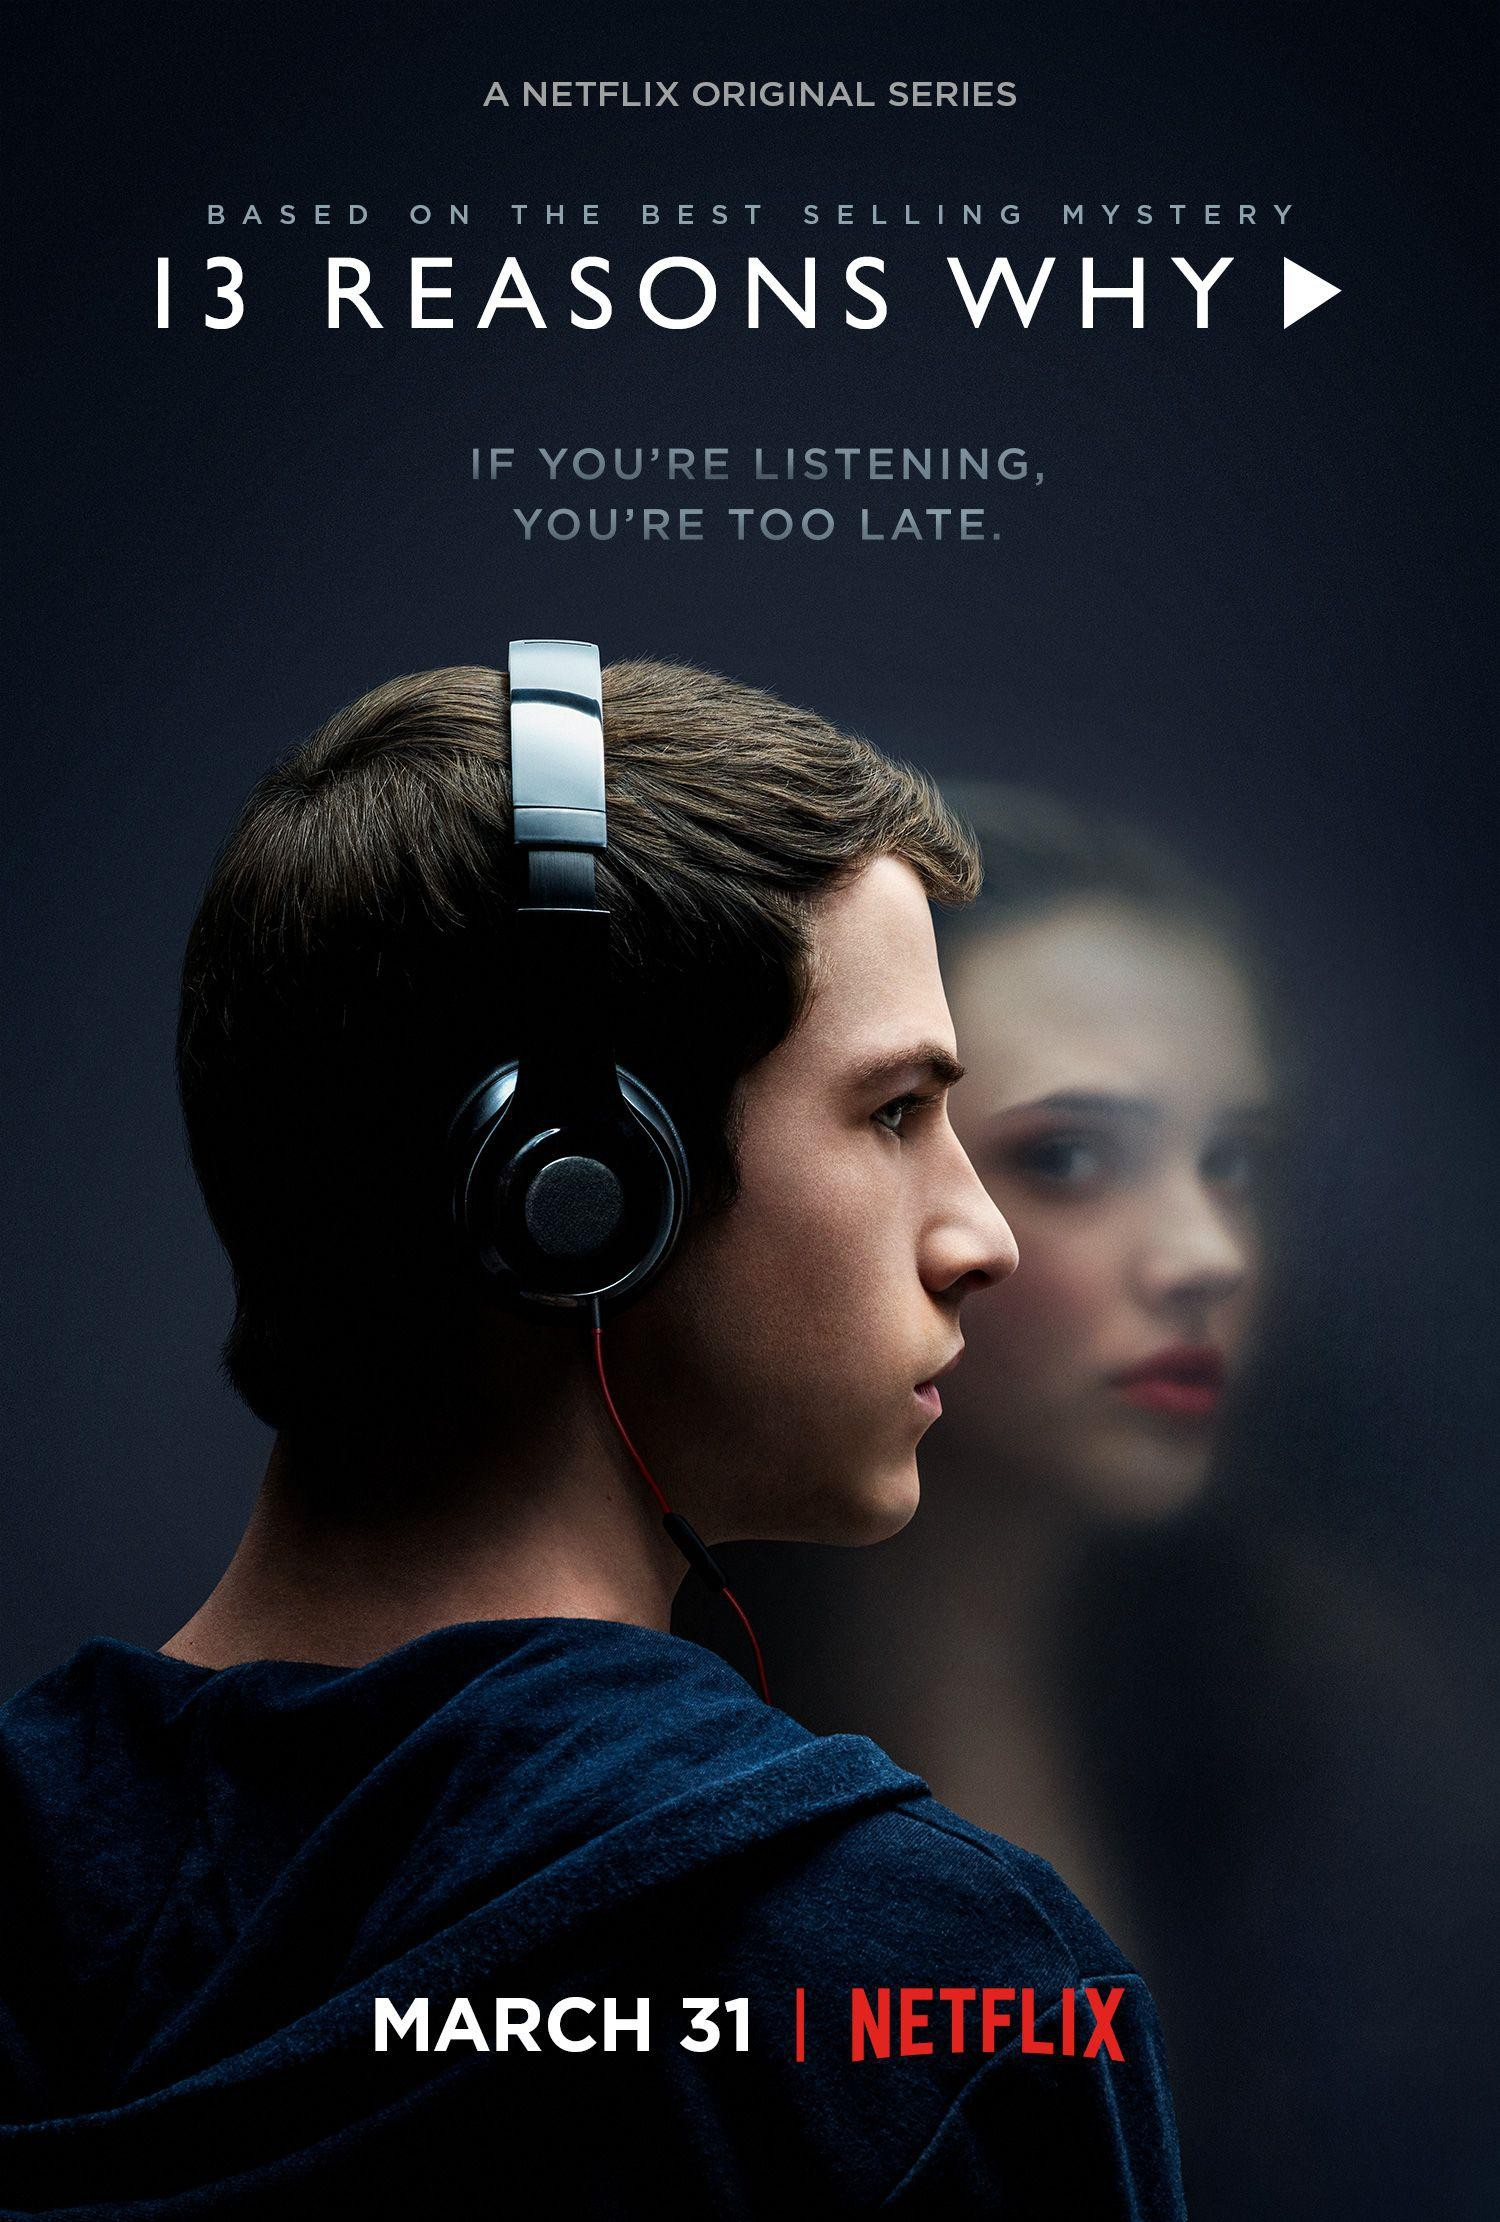 13 Reasons Why Season 1 十三个原因 第一季